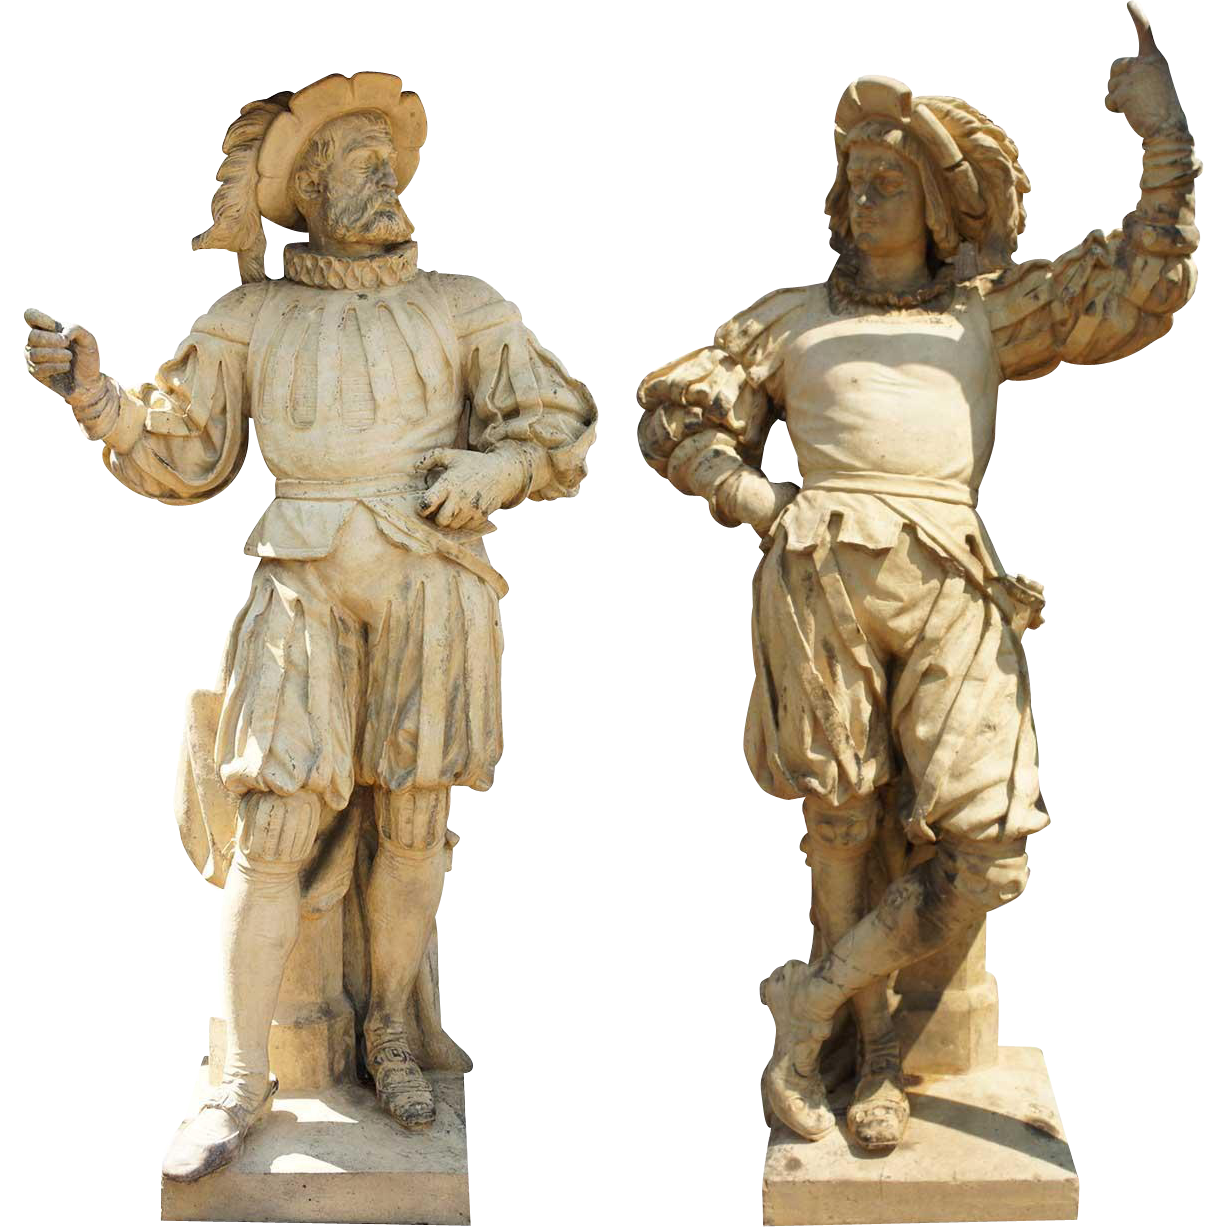 ALEXANDER CALENDRELLI, Pair of Glazed Stoneware Pottery Lansquenet Statues